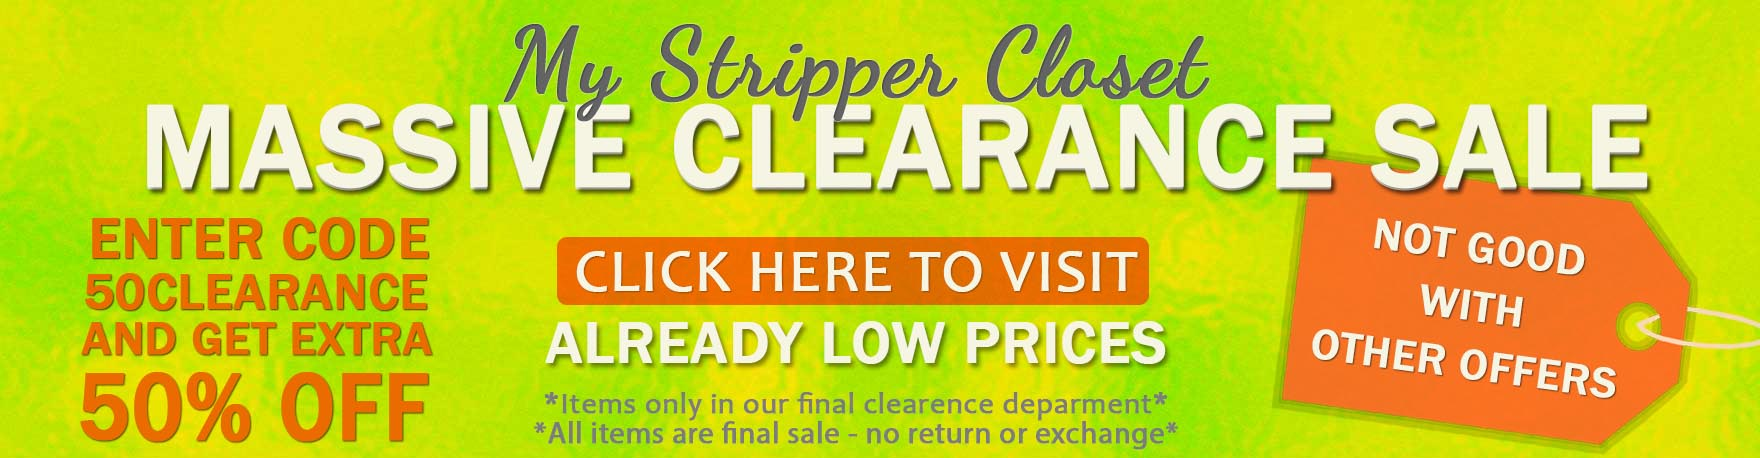 USE CODE: 50CLEARANCE FOR 50% OFF CLEARANCE MYSTRIPPERCLOSET.COM